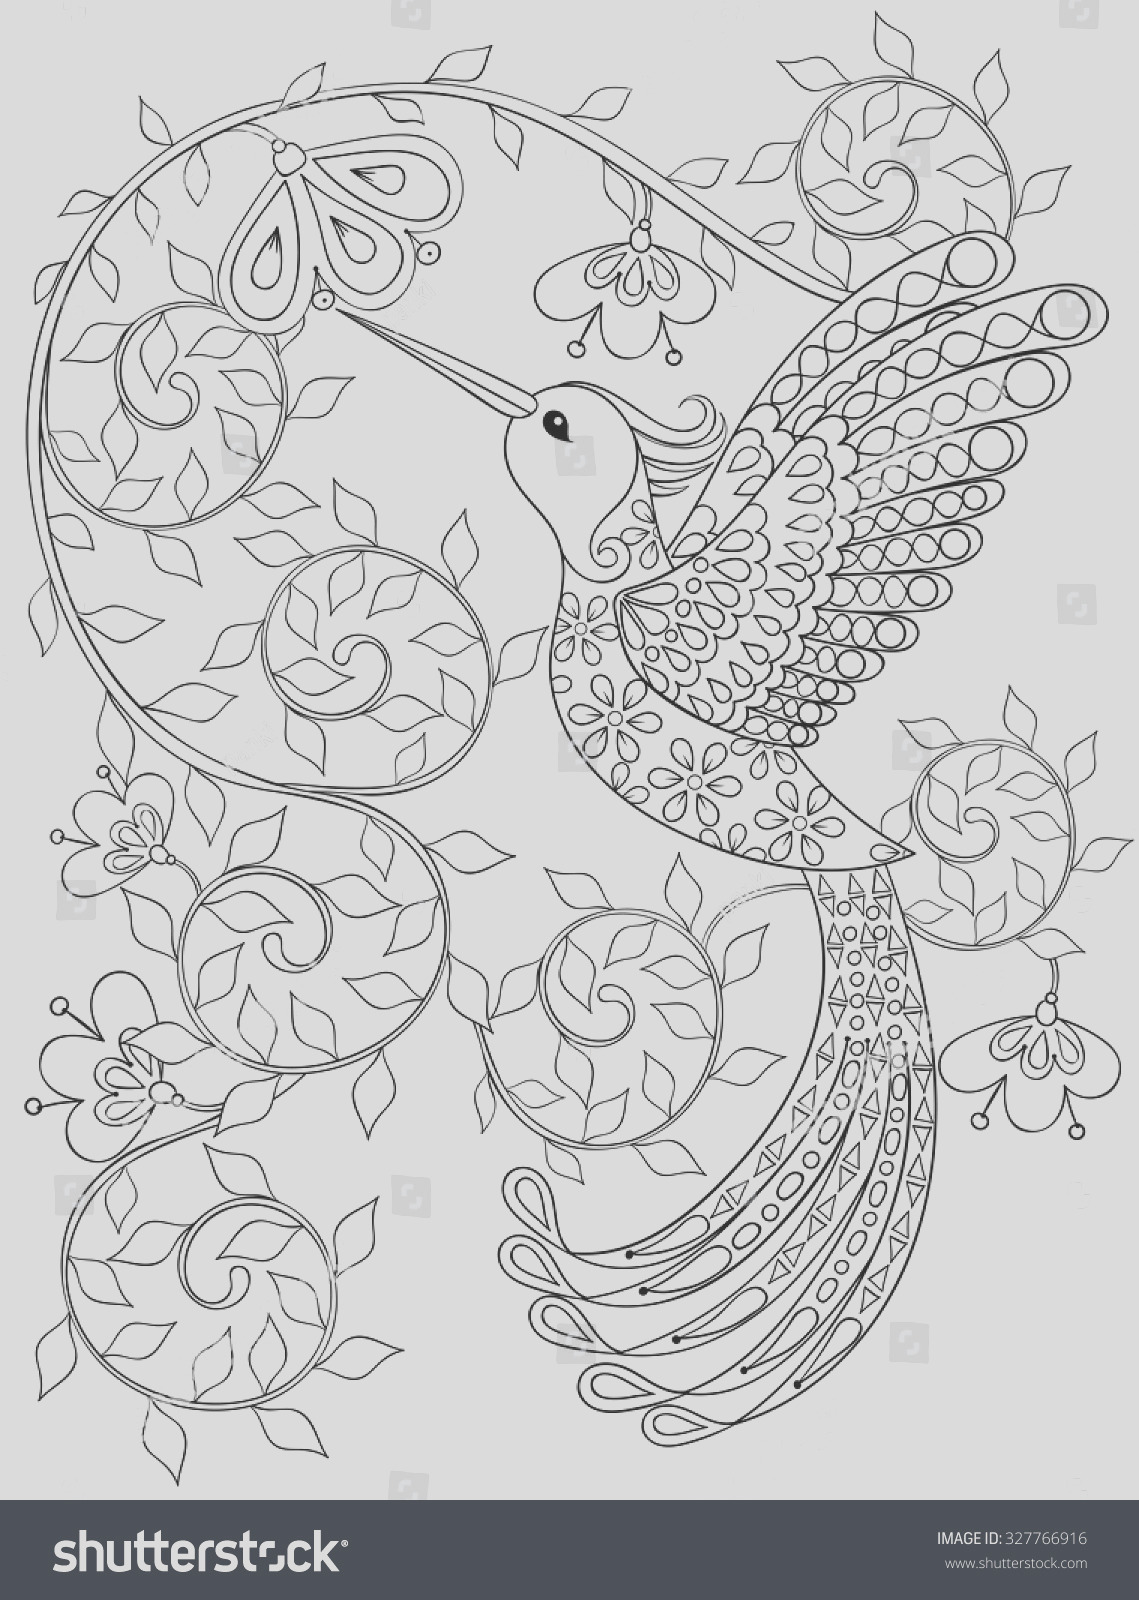 stock vector coloring page with hummingbird zentangle flying bird for adult coloring books or tattoos with